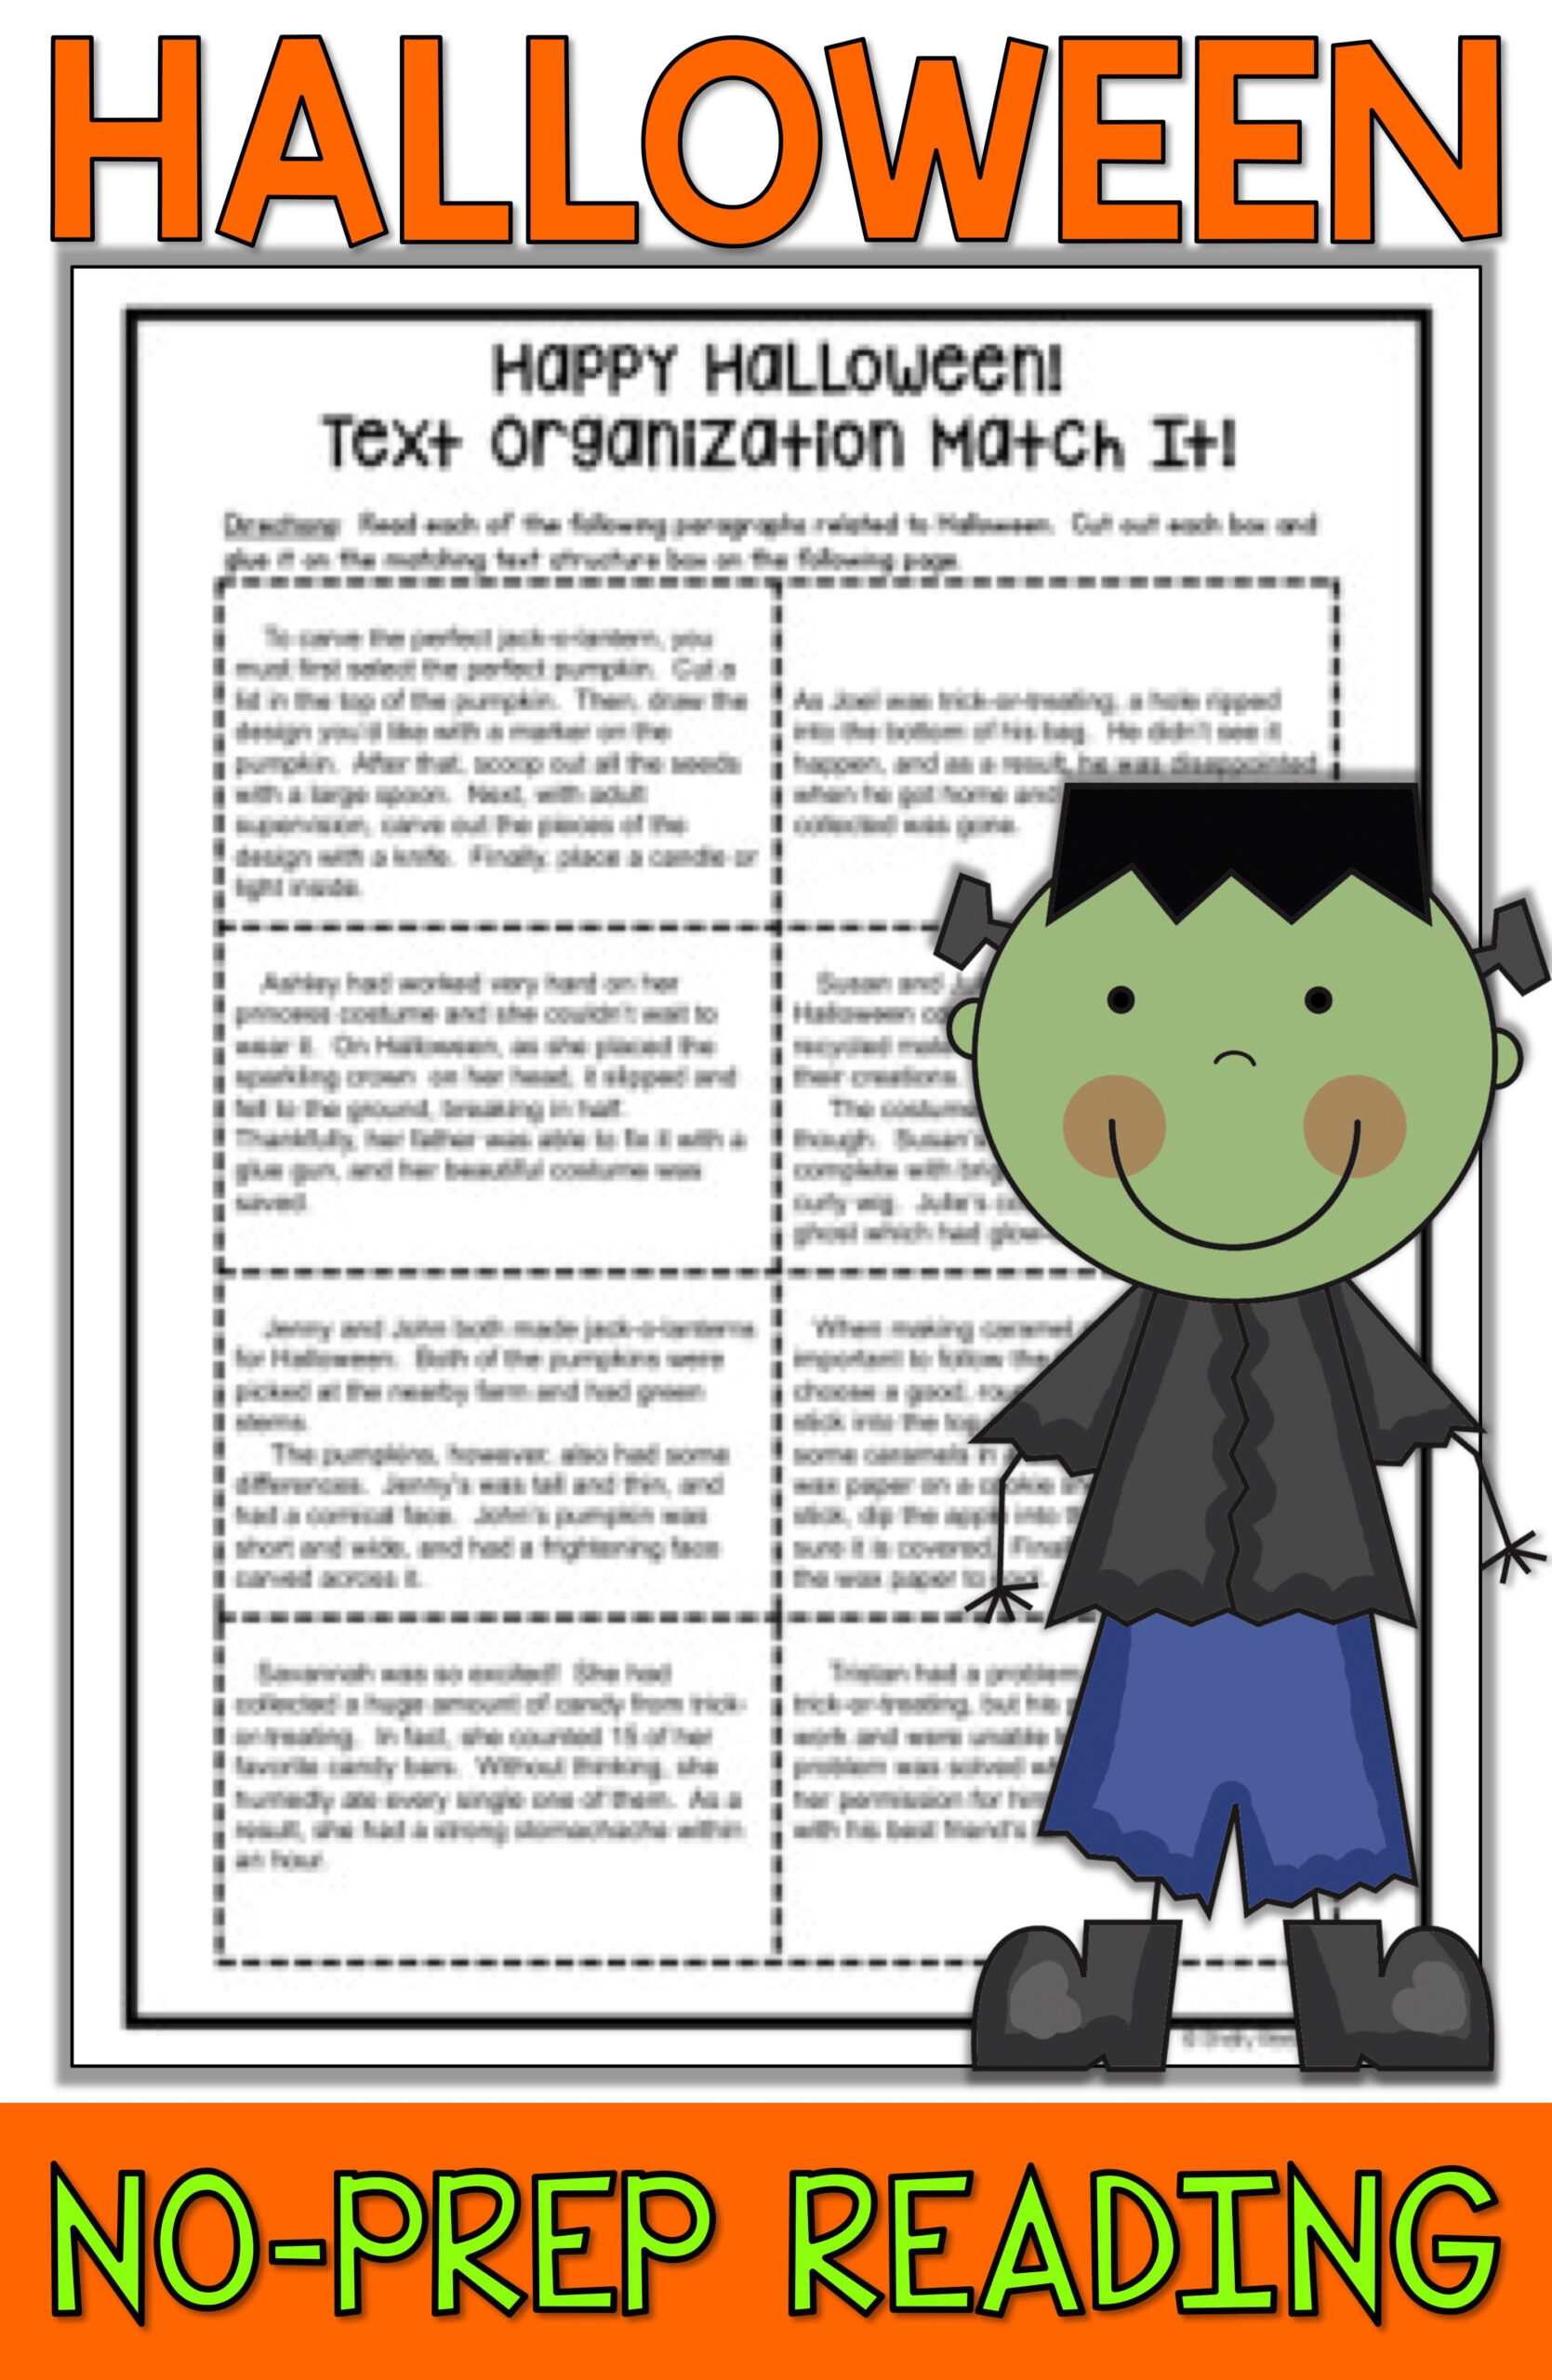 Halloween Reading Activities For 3Rd, 4Th Grade, 5Th, And